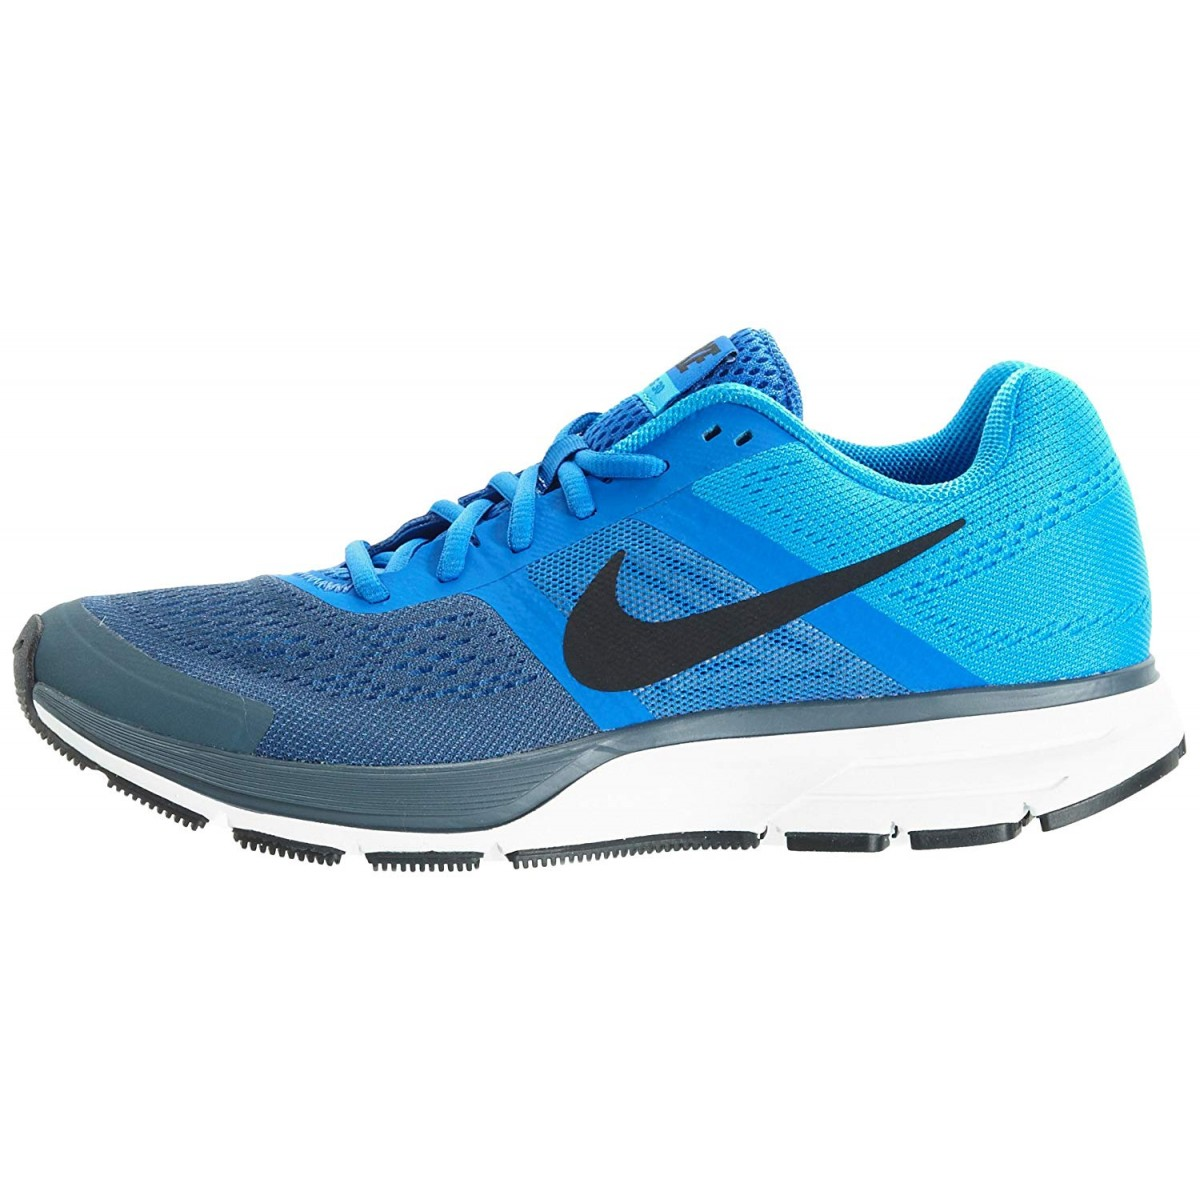 Chaussure de running nike Air Zoom Pegasus 30